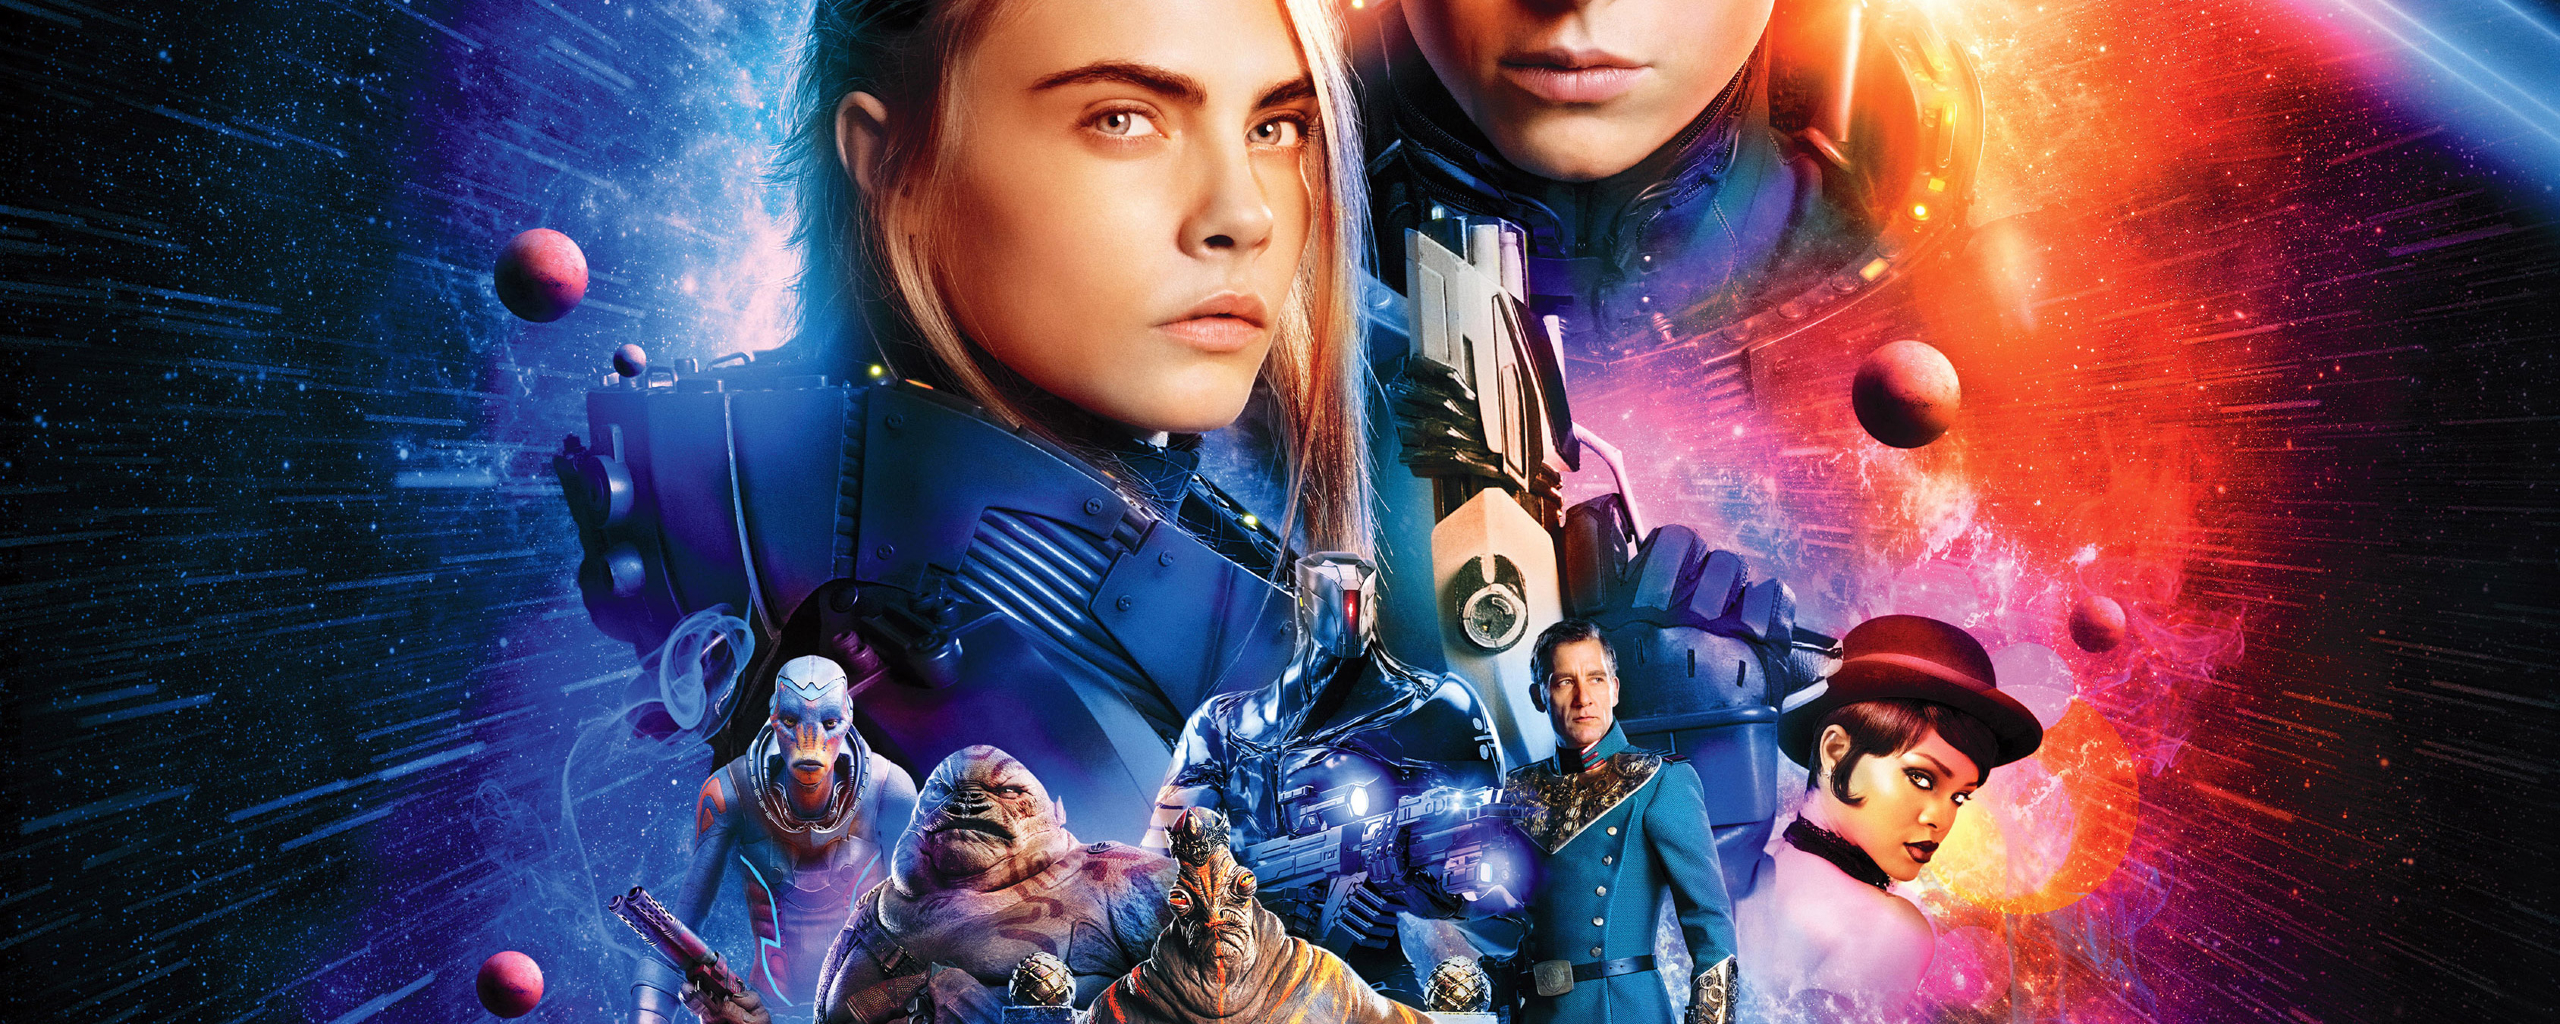 Valerian and the City of a Thousand Planets Wallpaper 8   2560 X 2560x1024